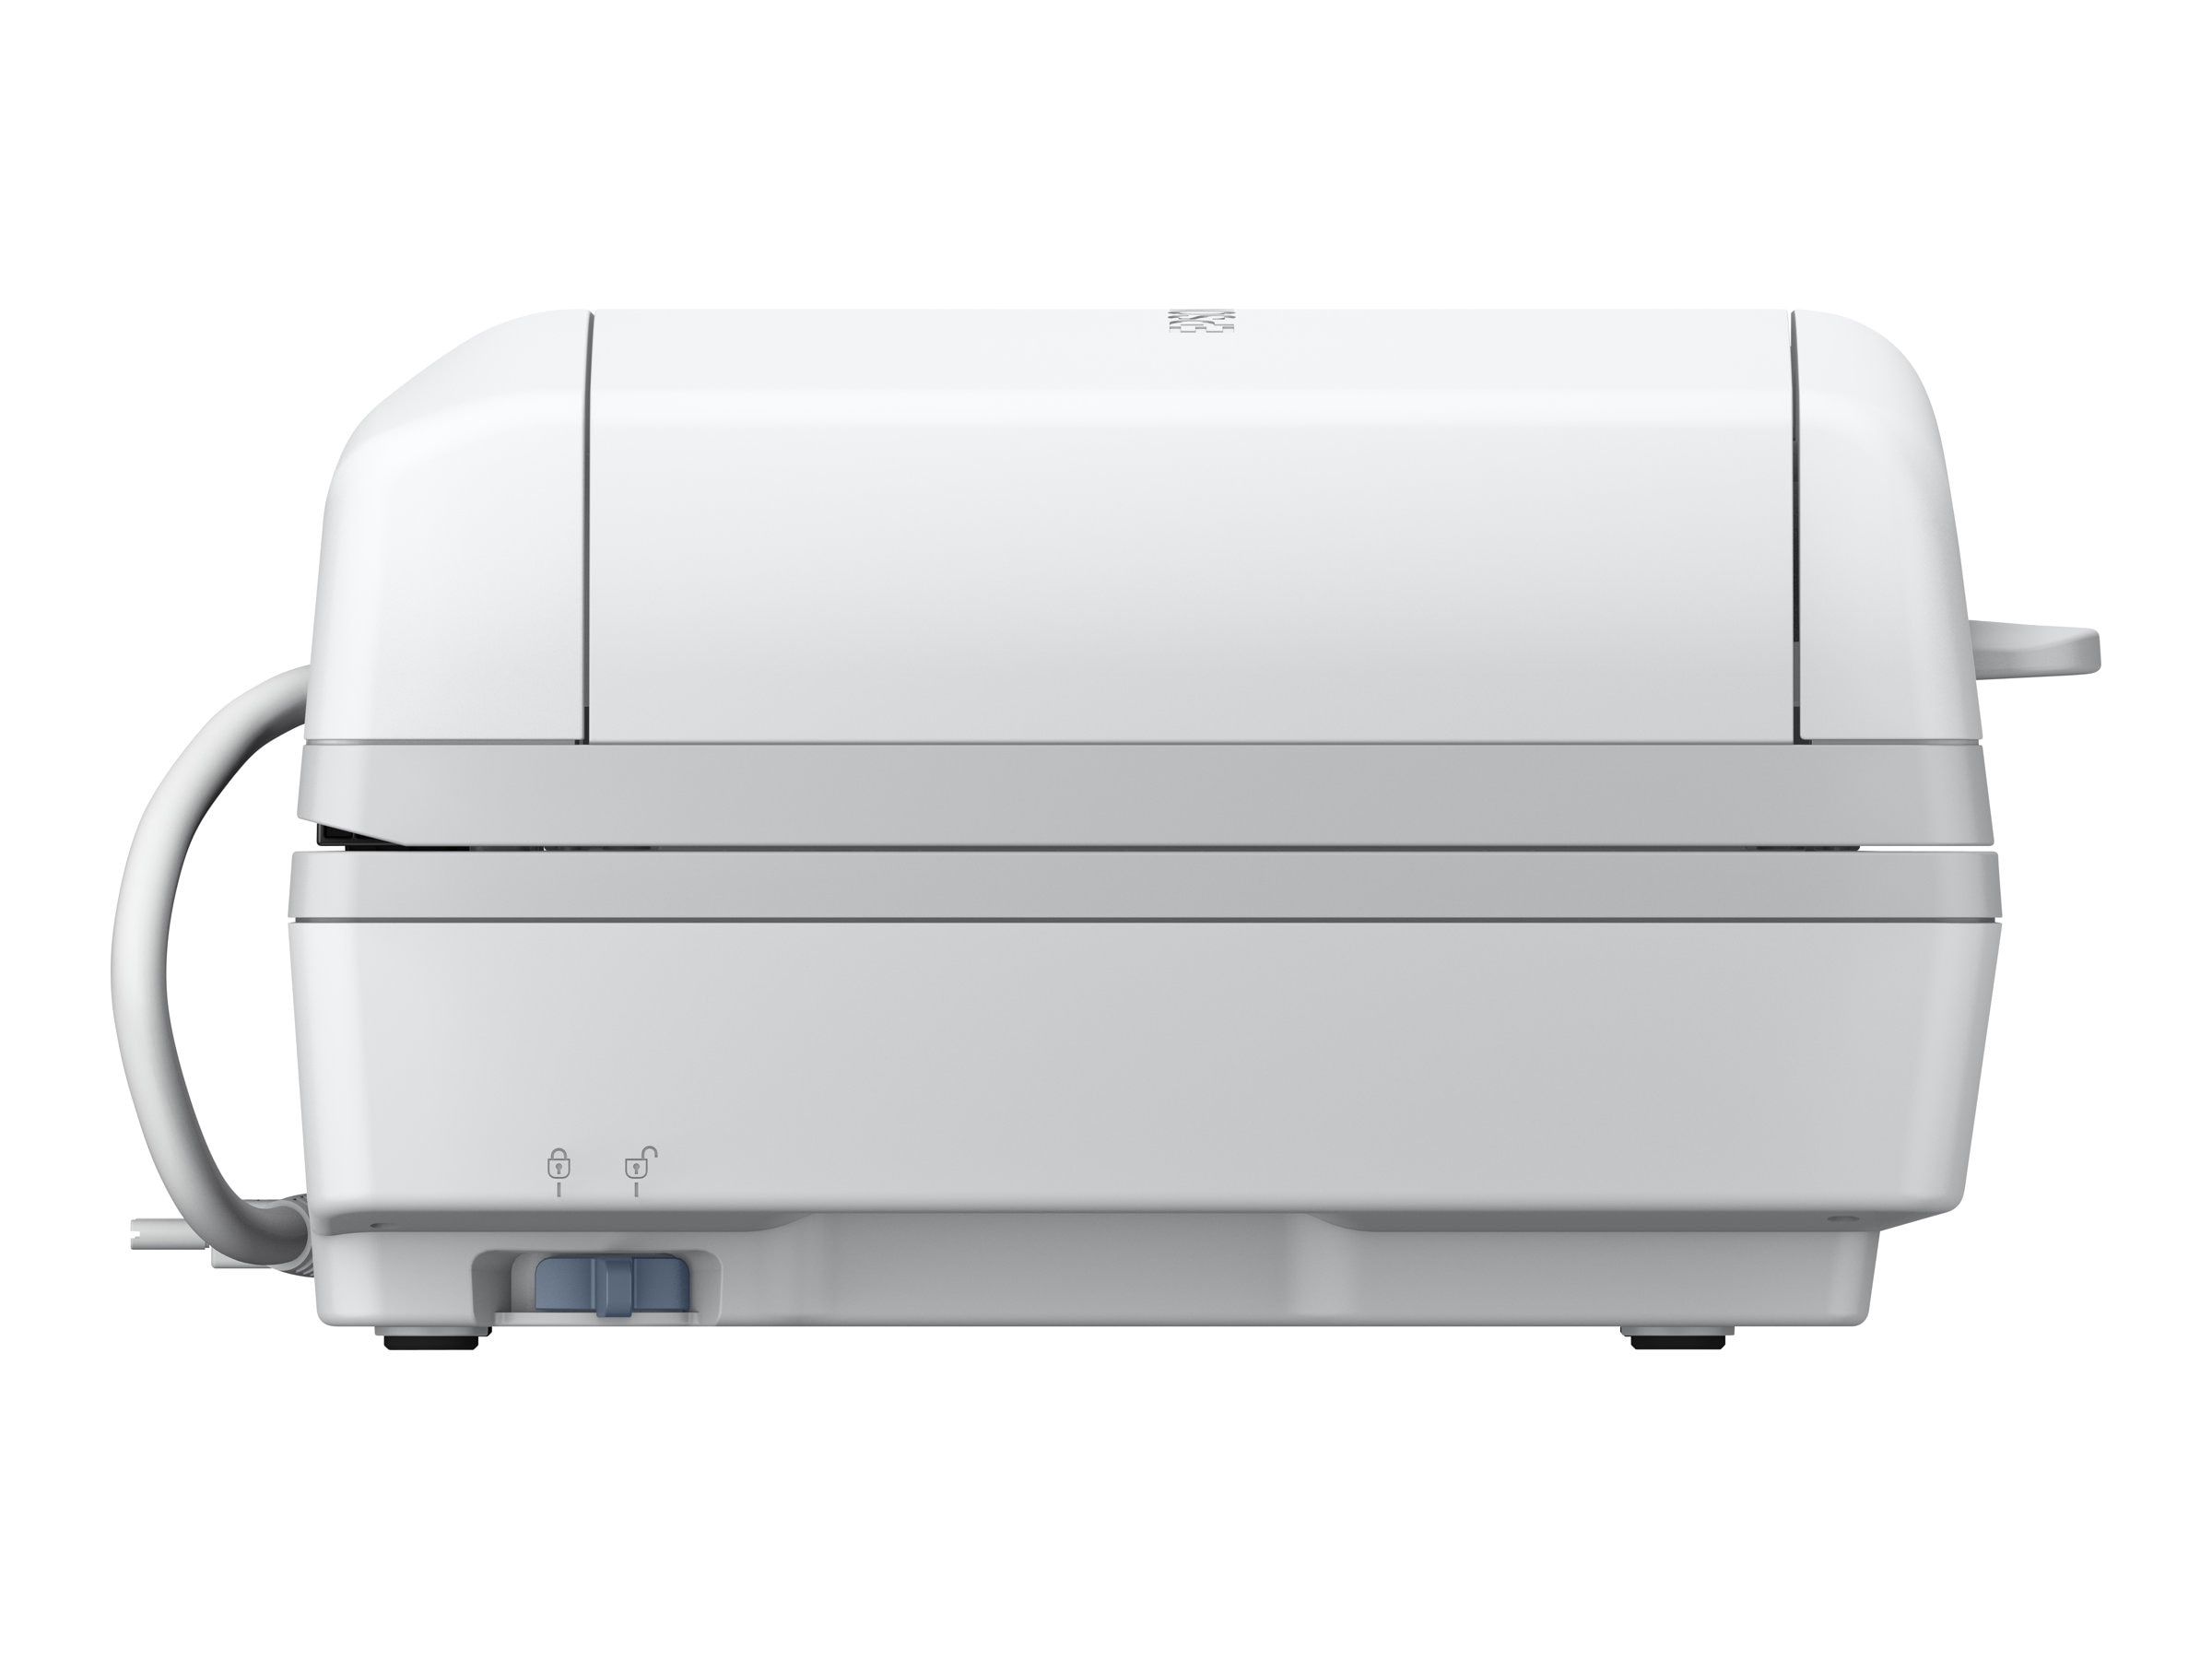 Epson WorkForce DS-7500 Scanner - $1199 less instant rebate of $40.00, B11B205321